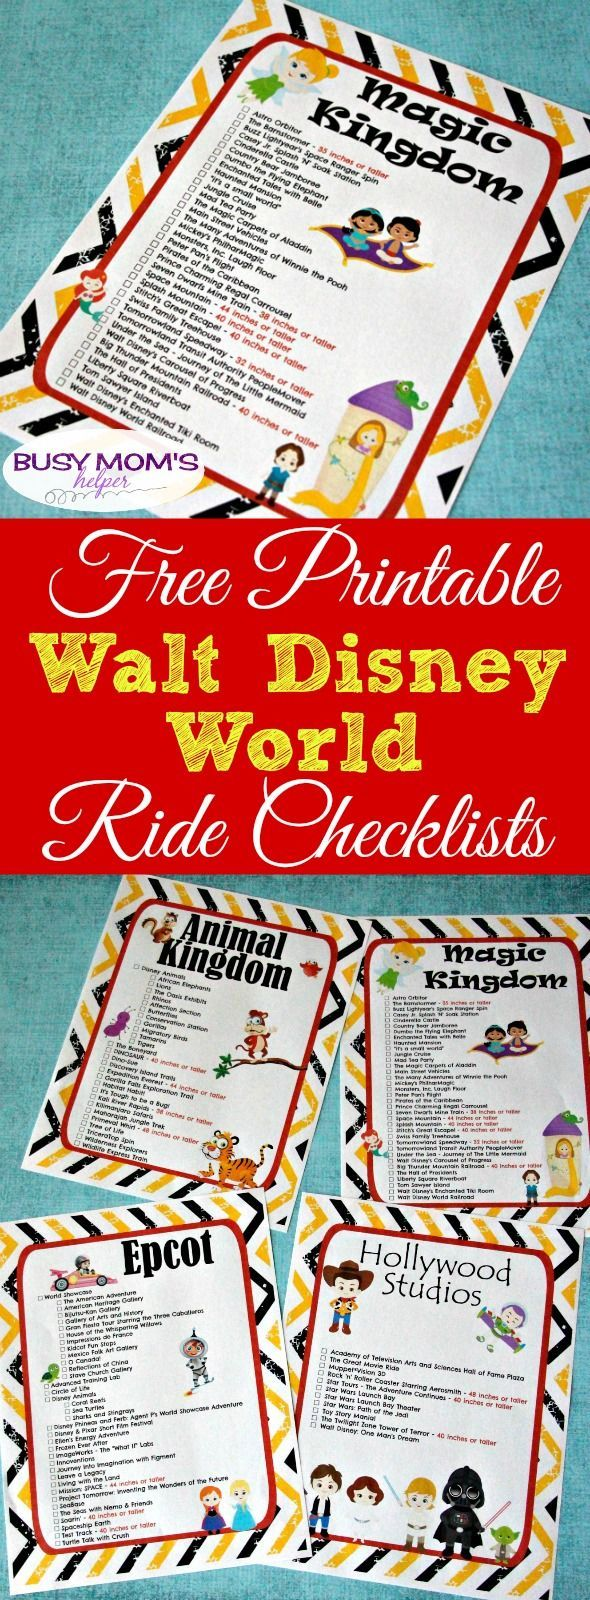 Free Printable Walt Disney World Ride Checklists